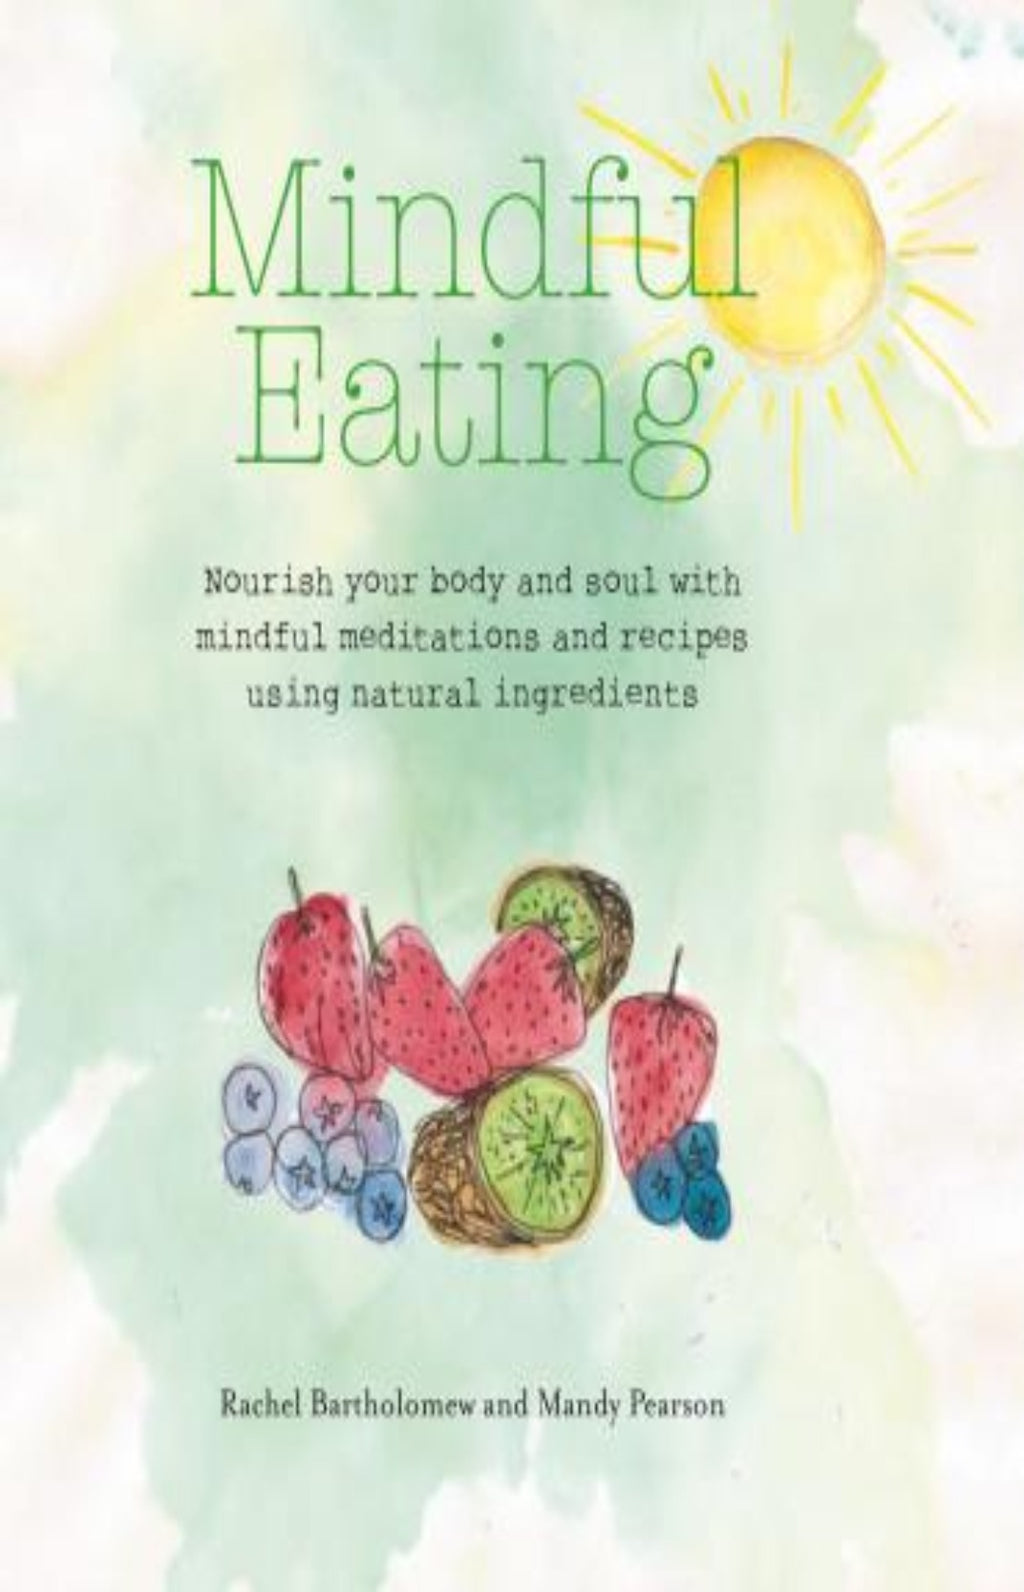 Mindful Eating : Nourish Your Body and Soul with Mindful Meditations and Recipes Using Natural Ingredients